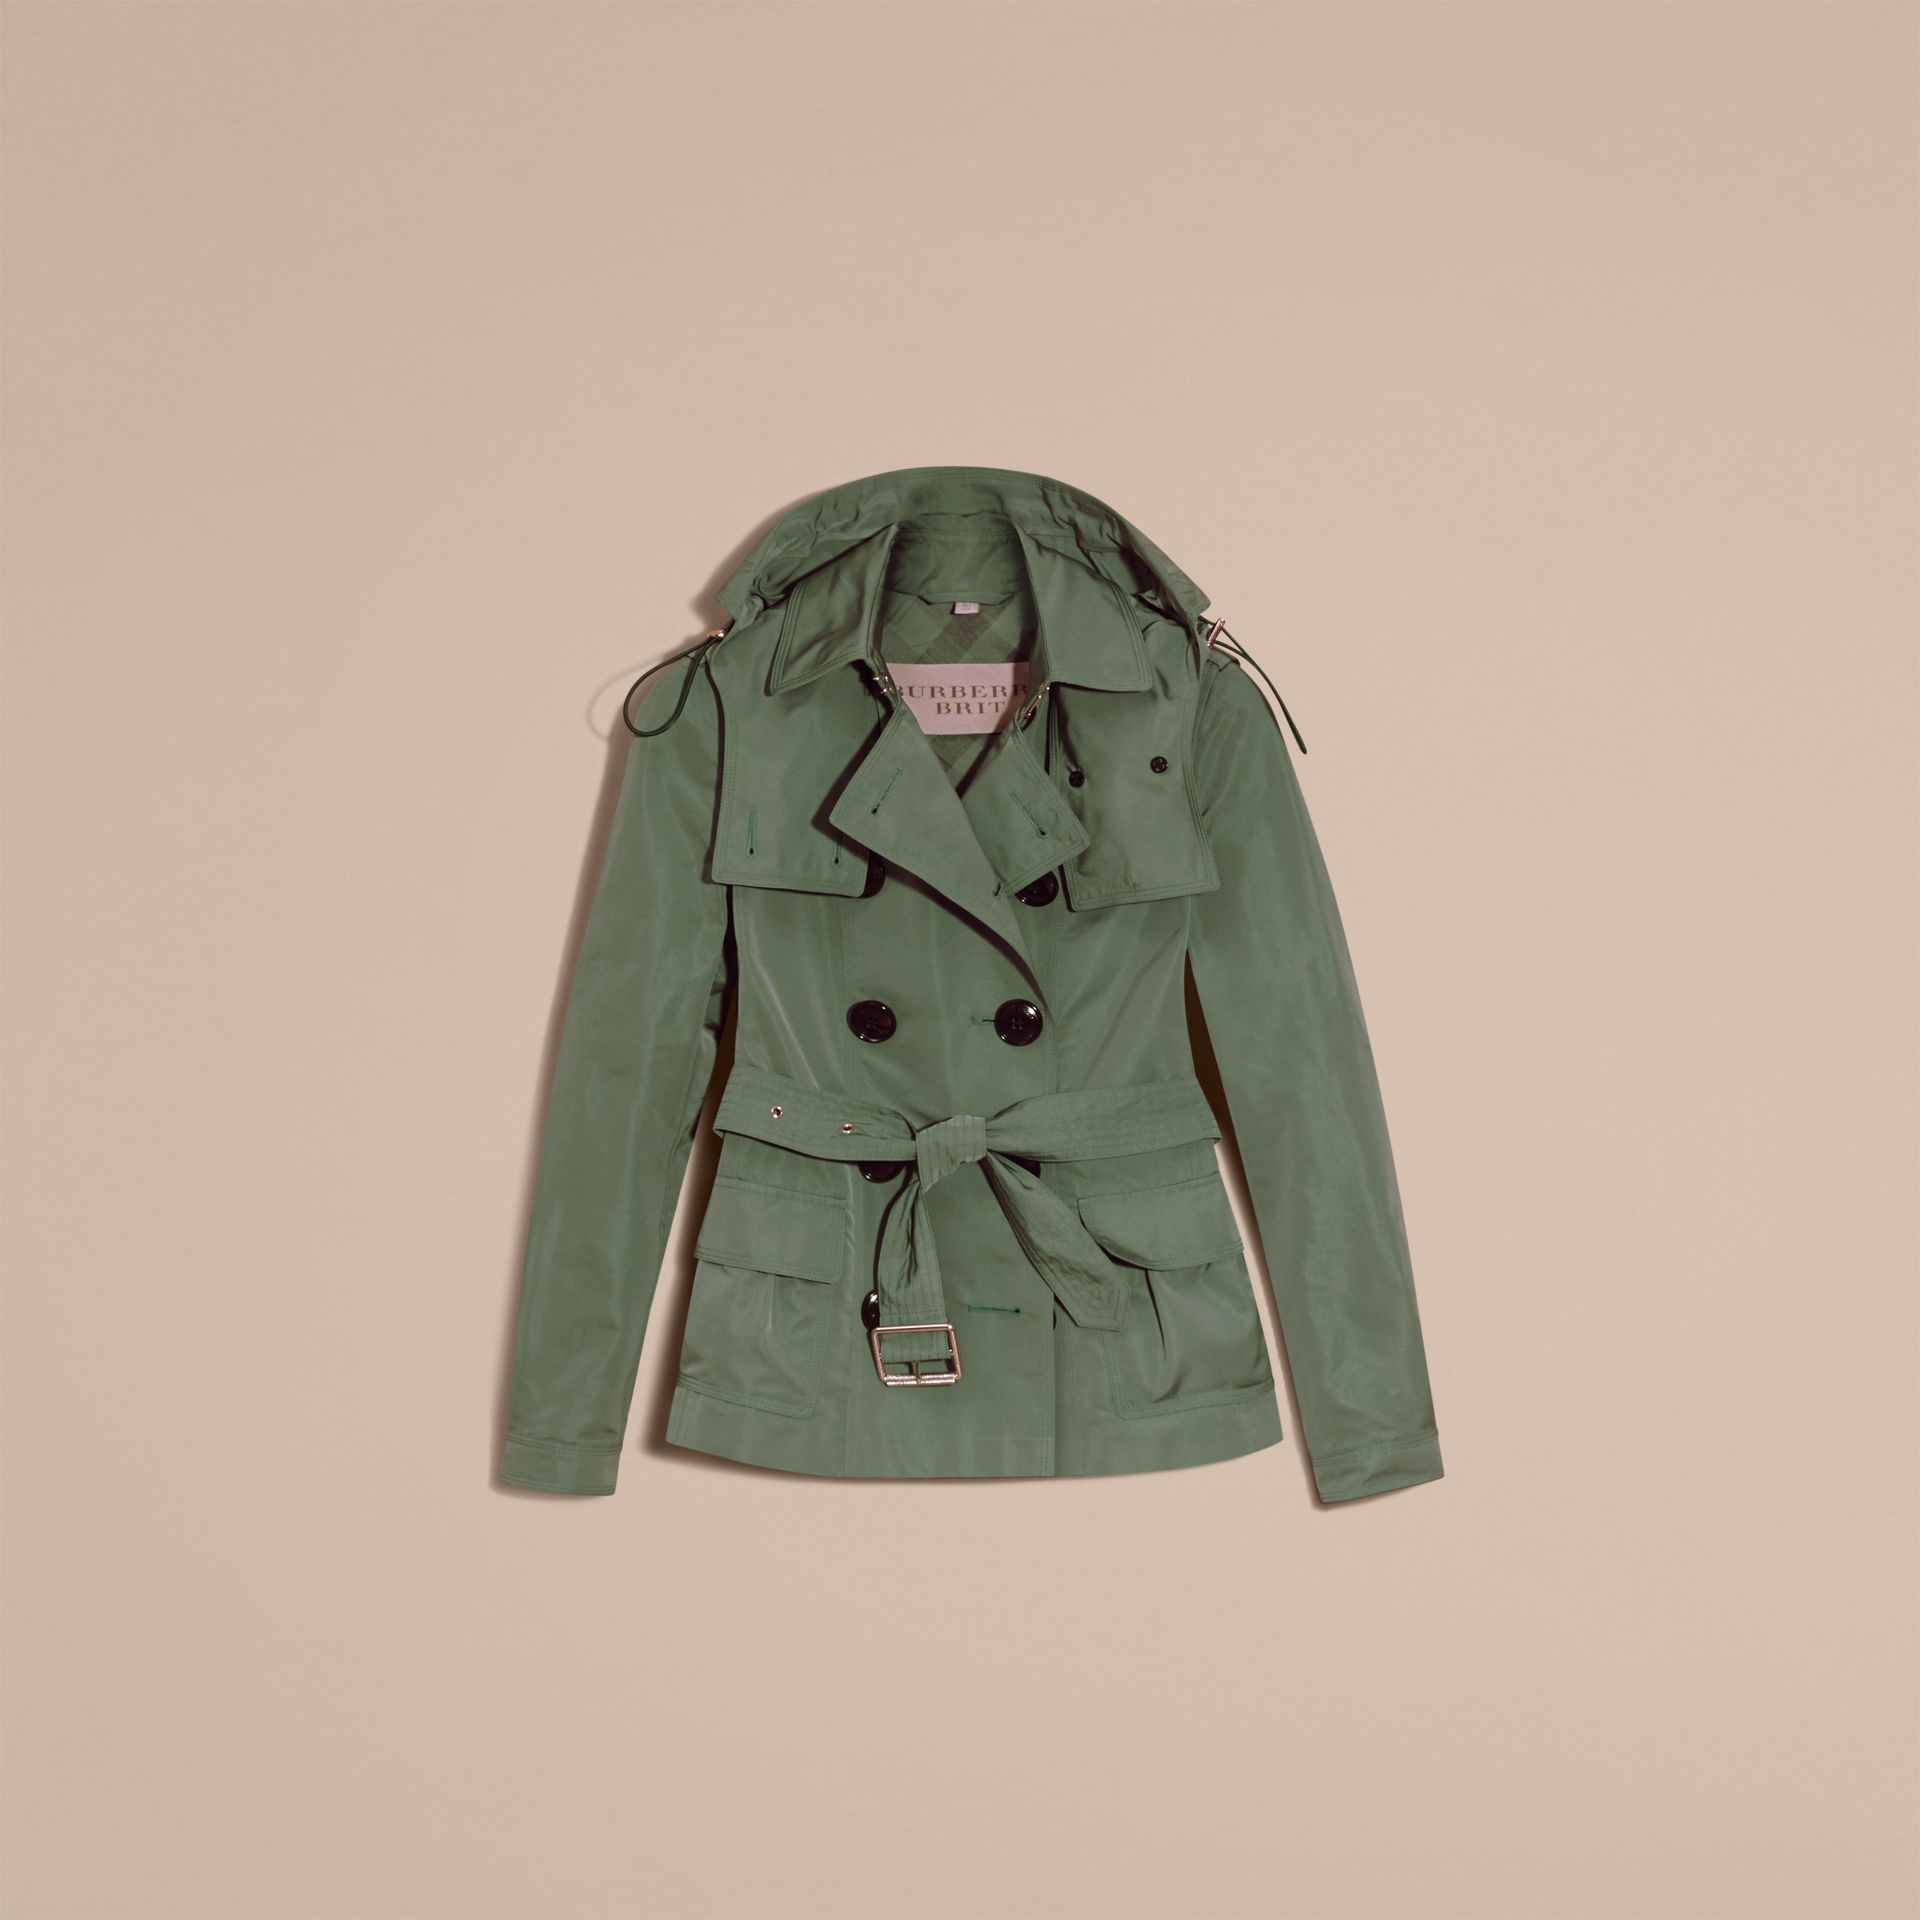 Eucalyptus green Showerproof Taffeta Trench Jacket with Detachable Hood Eucalyptus Green - gallery image 4